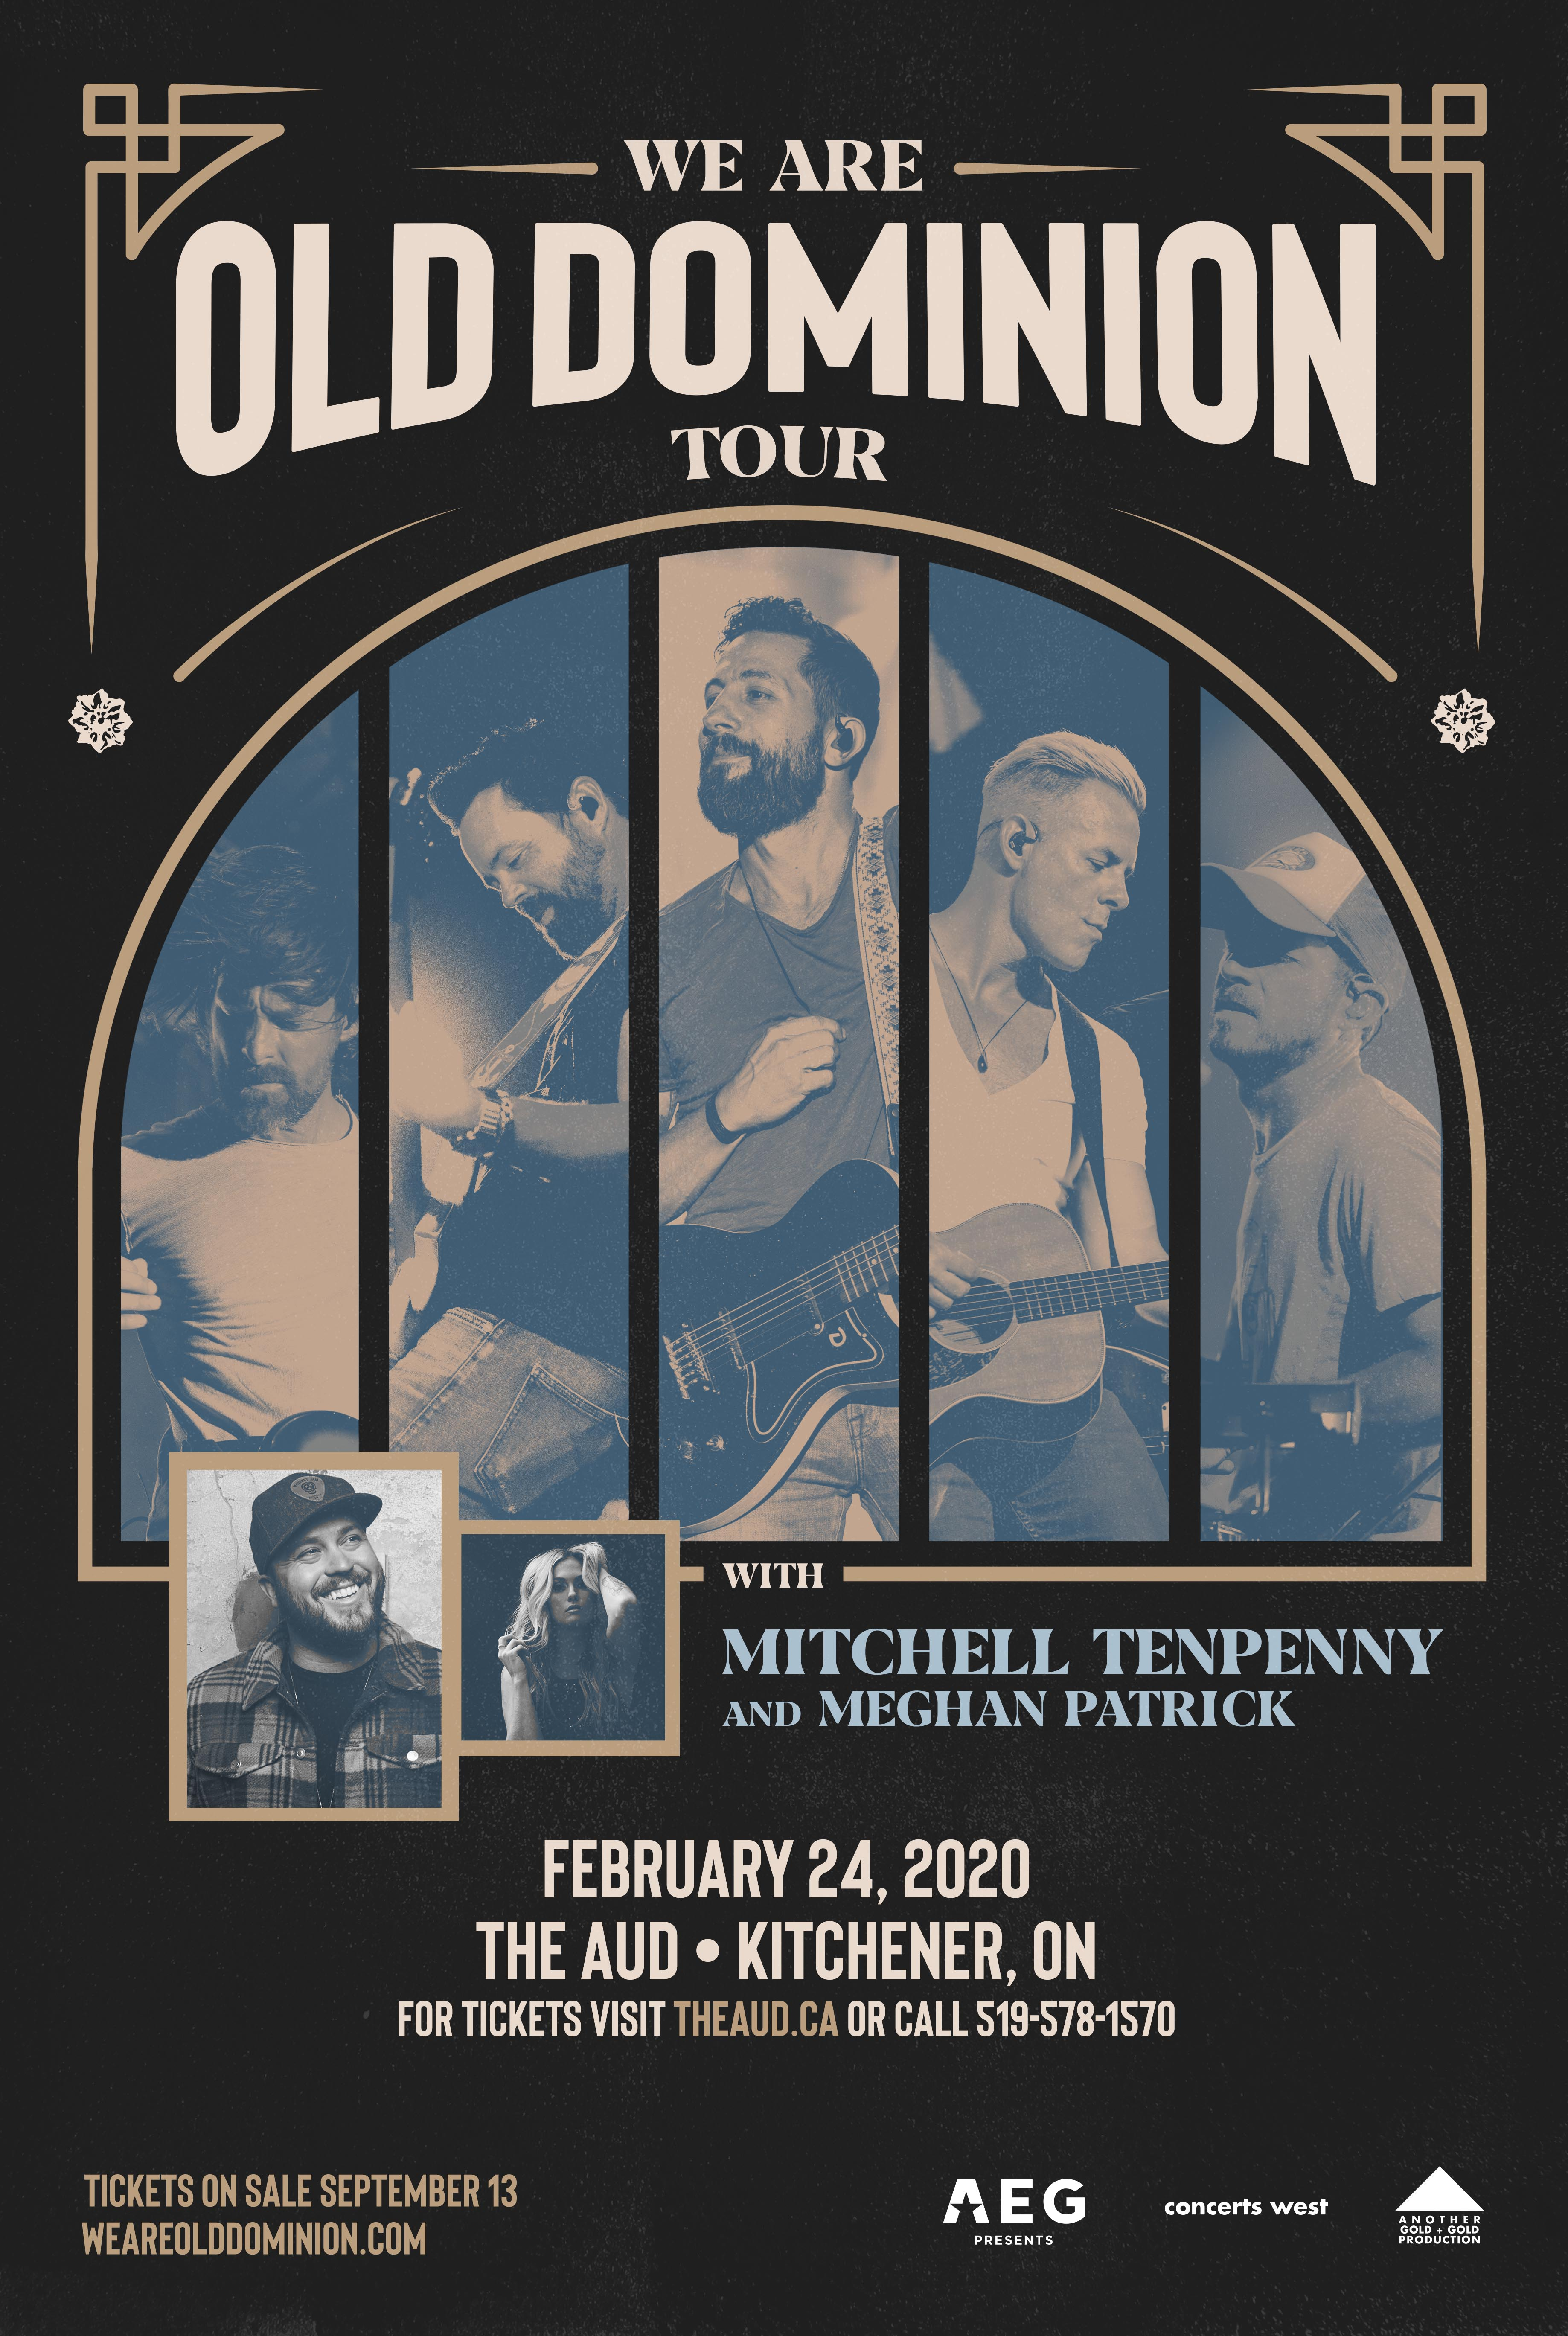 We Are Old Dominion Tour